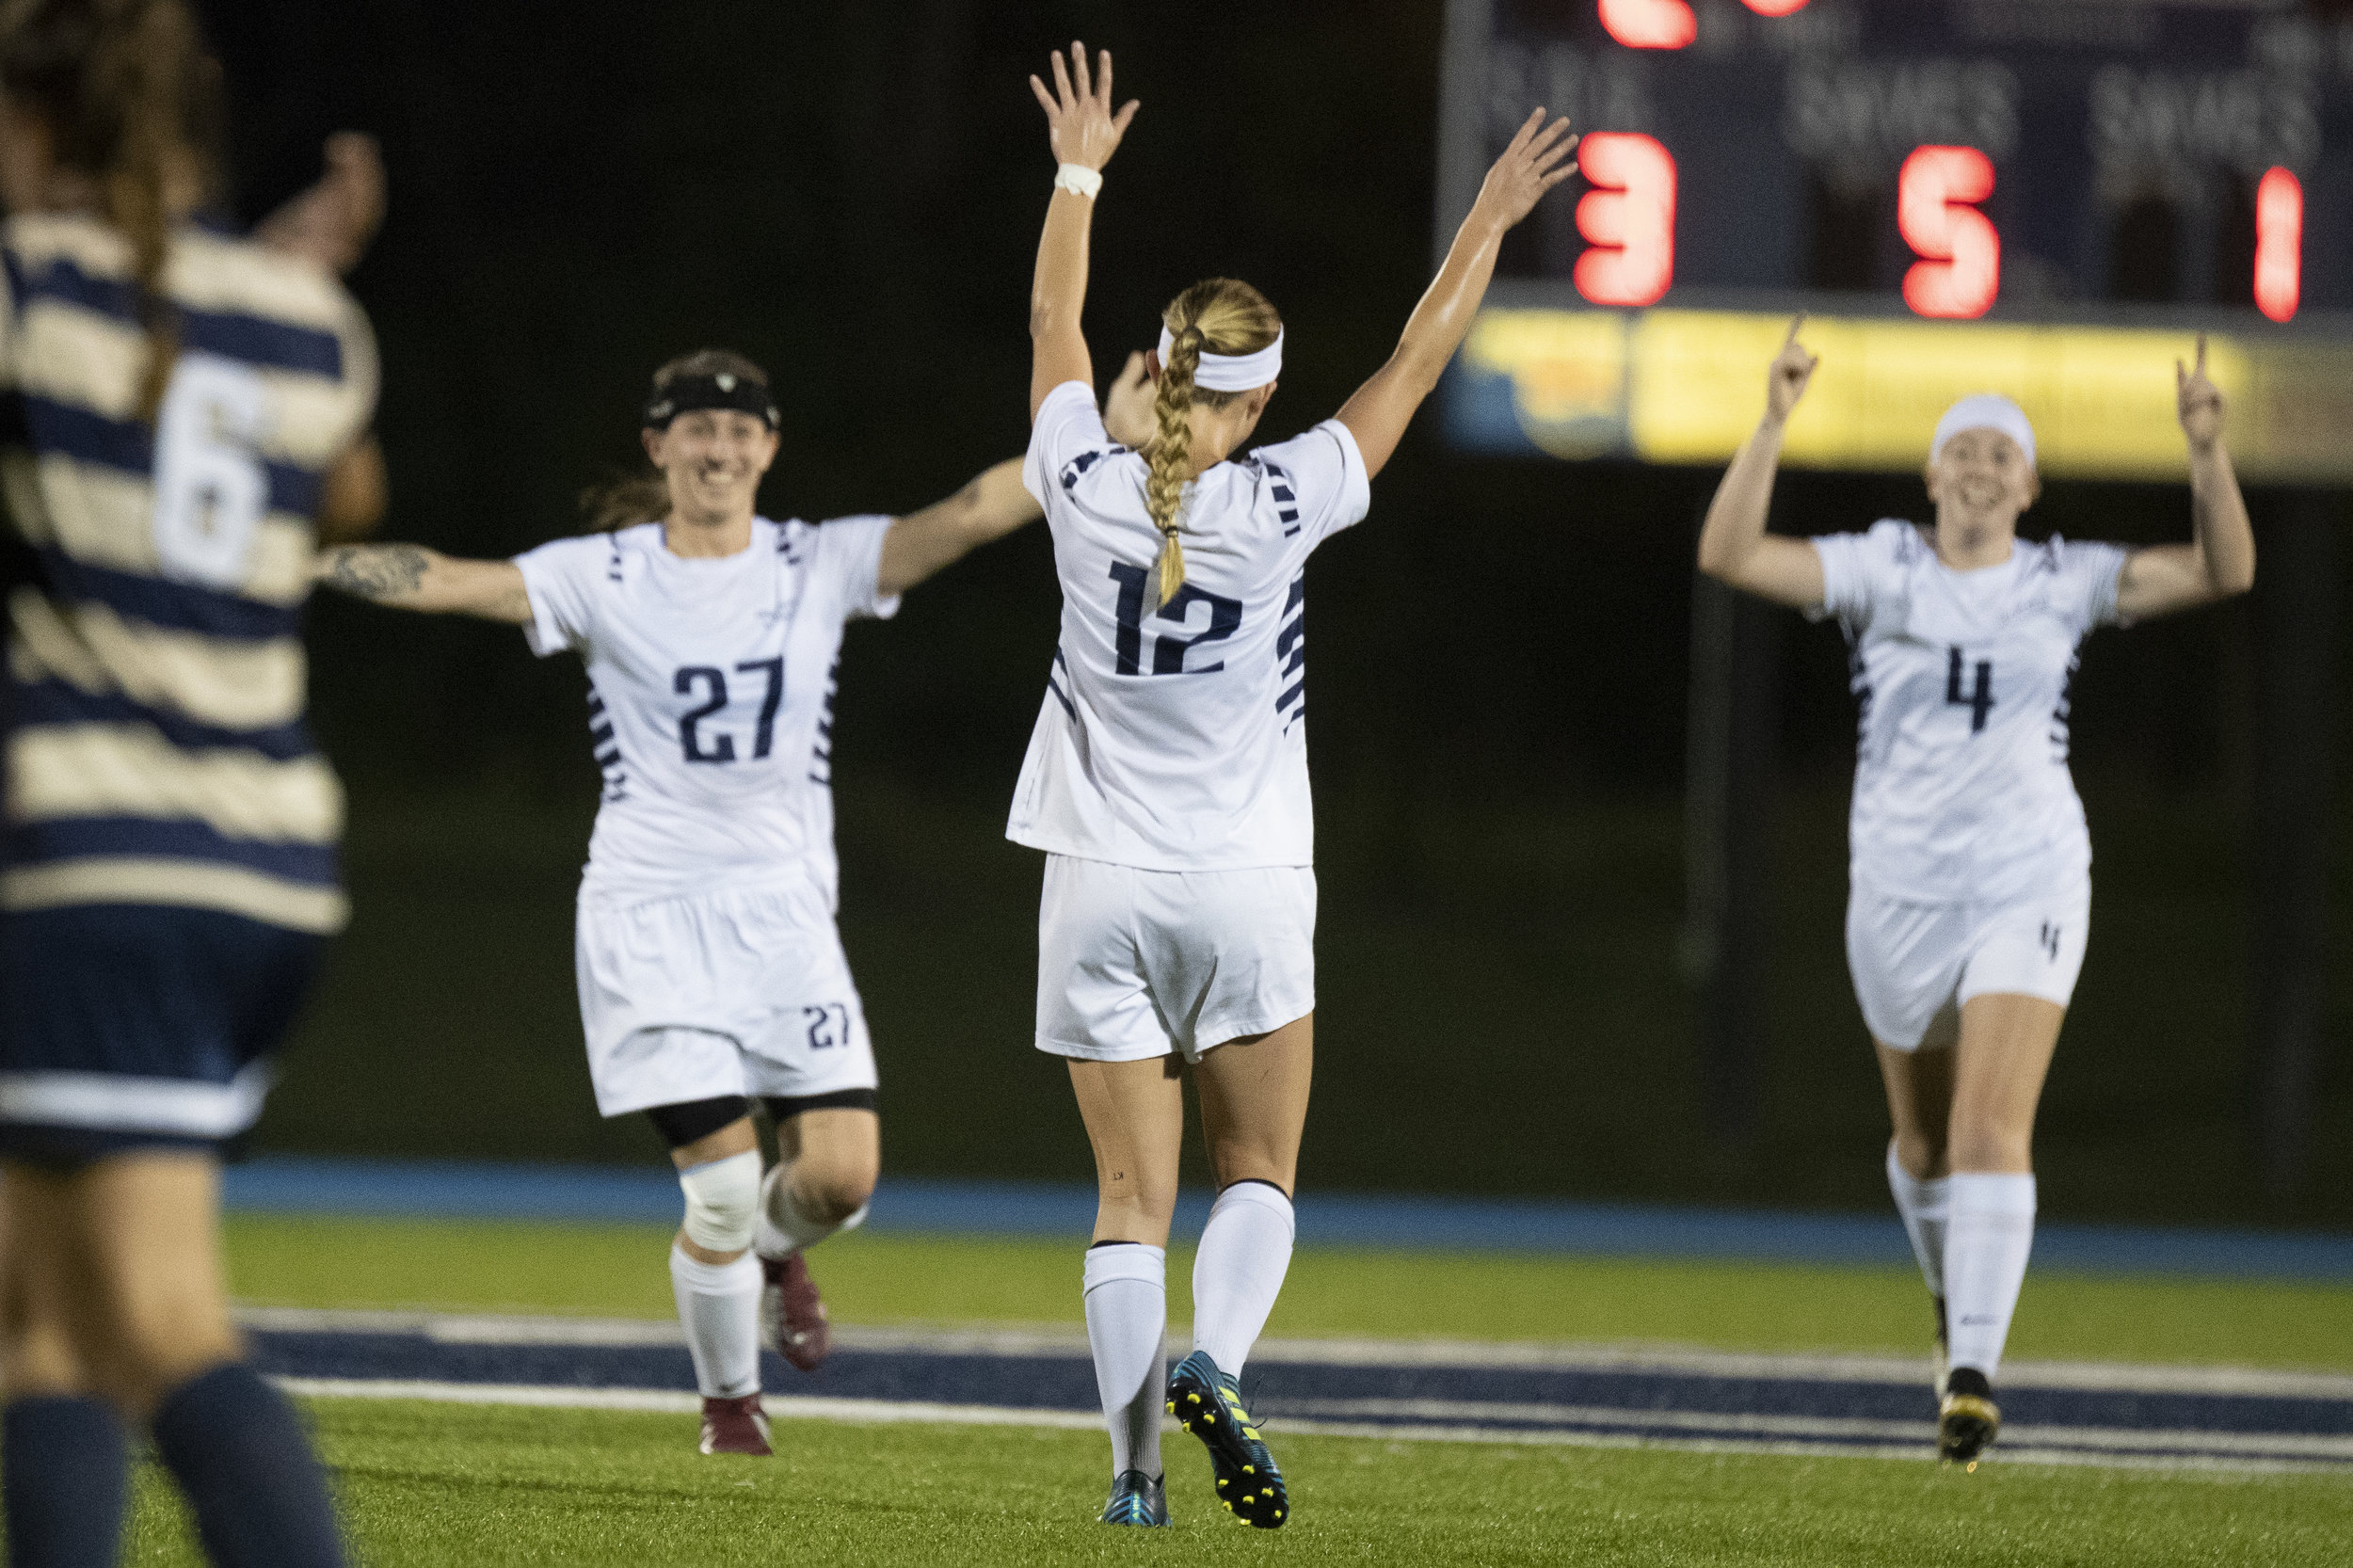 Penn State Altoona Women's Soccer player Haley Giedroc (#12) celebrates scoring with teammates Kierra Irwin (#27) and Mara Brackett (#4) in Altoona's 4-1 win against Juniata College on Wednesday, September 19th, 2018 at Spring Run Stadium. - Photo By: Noah Riffe